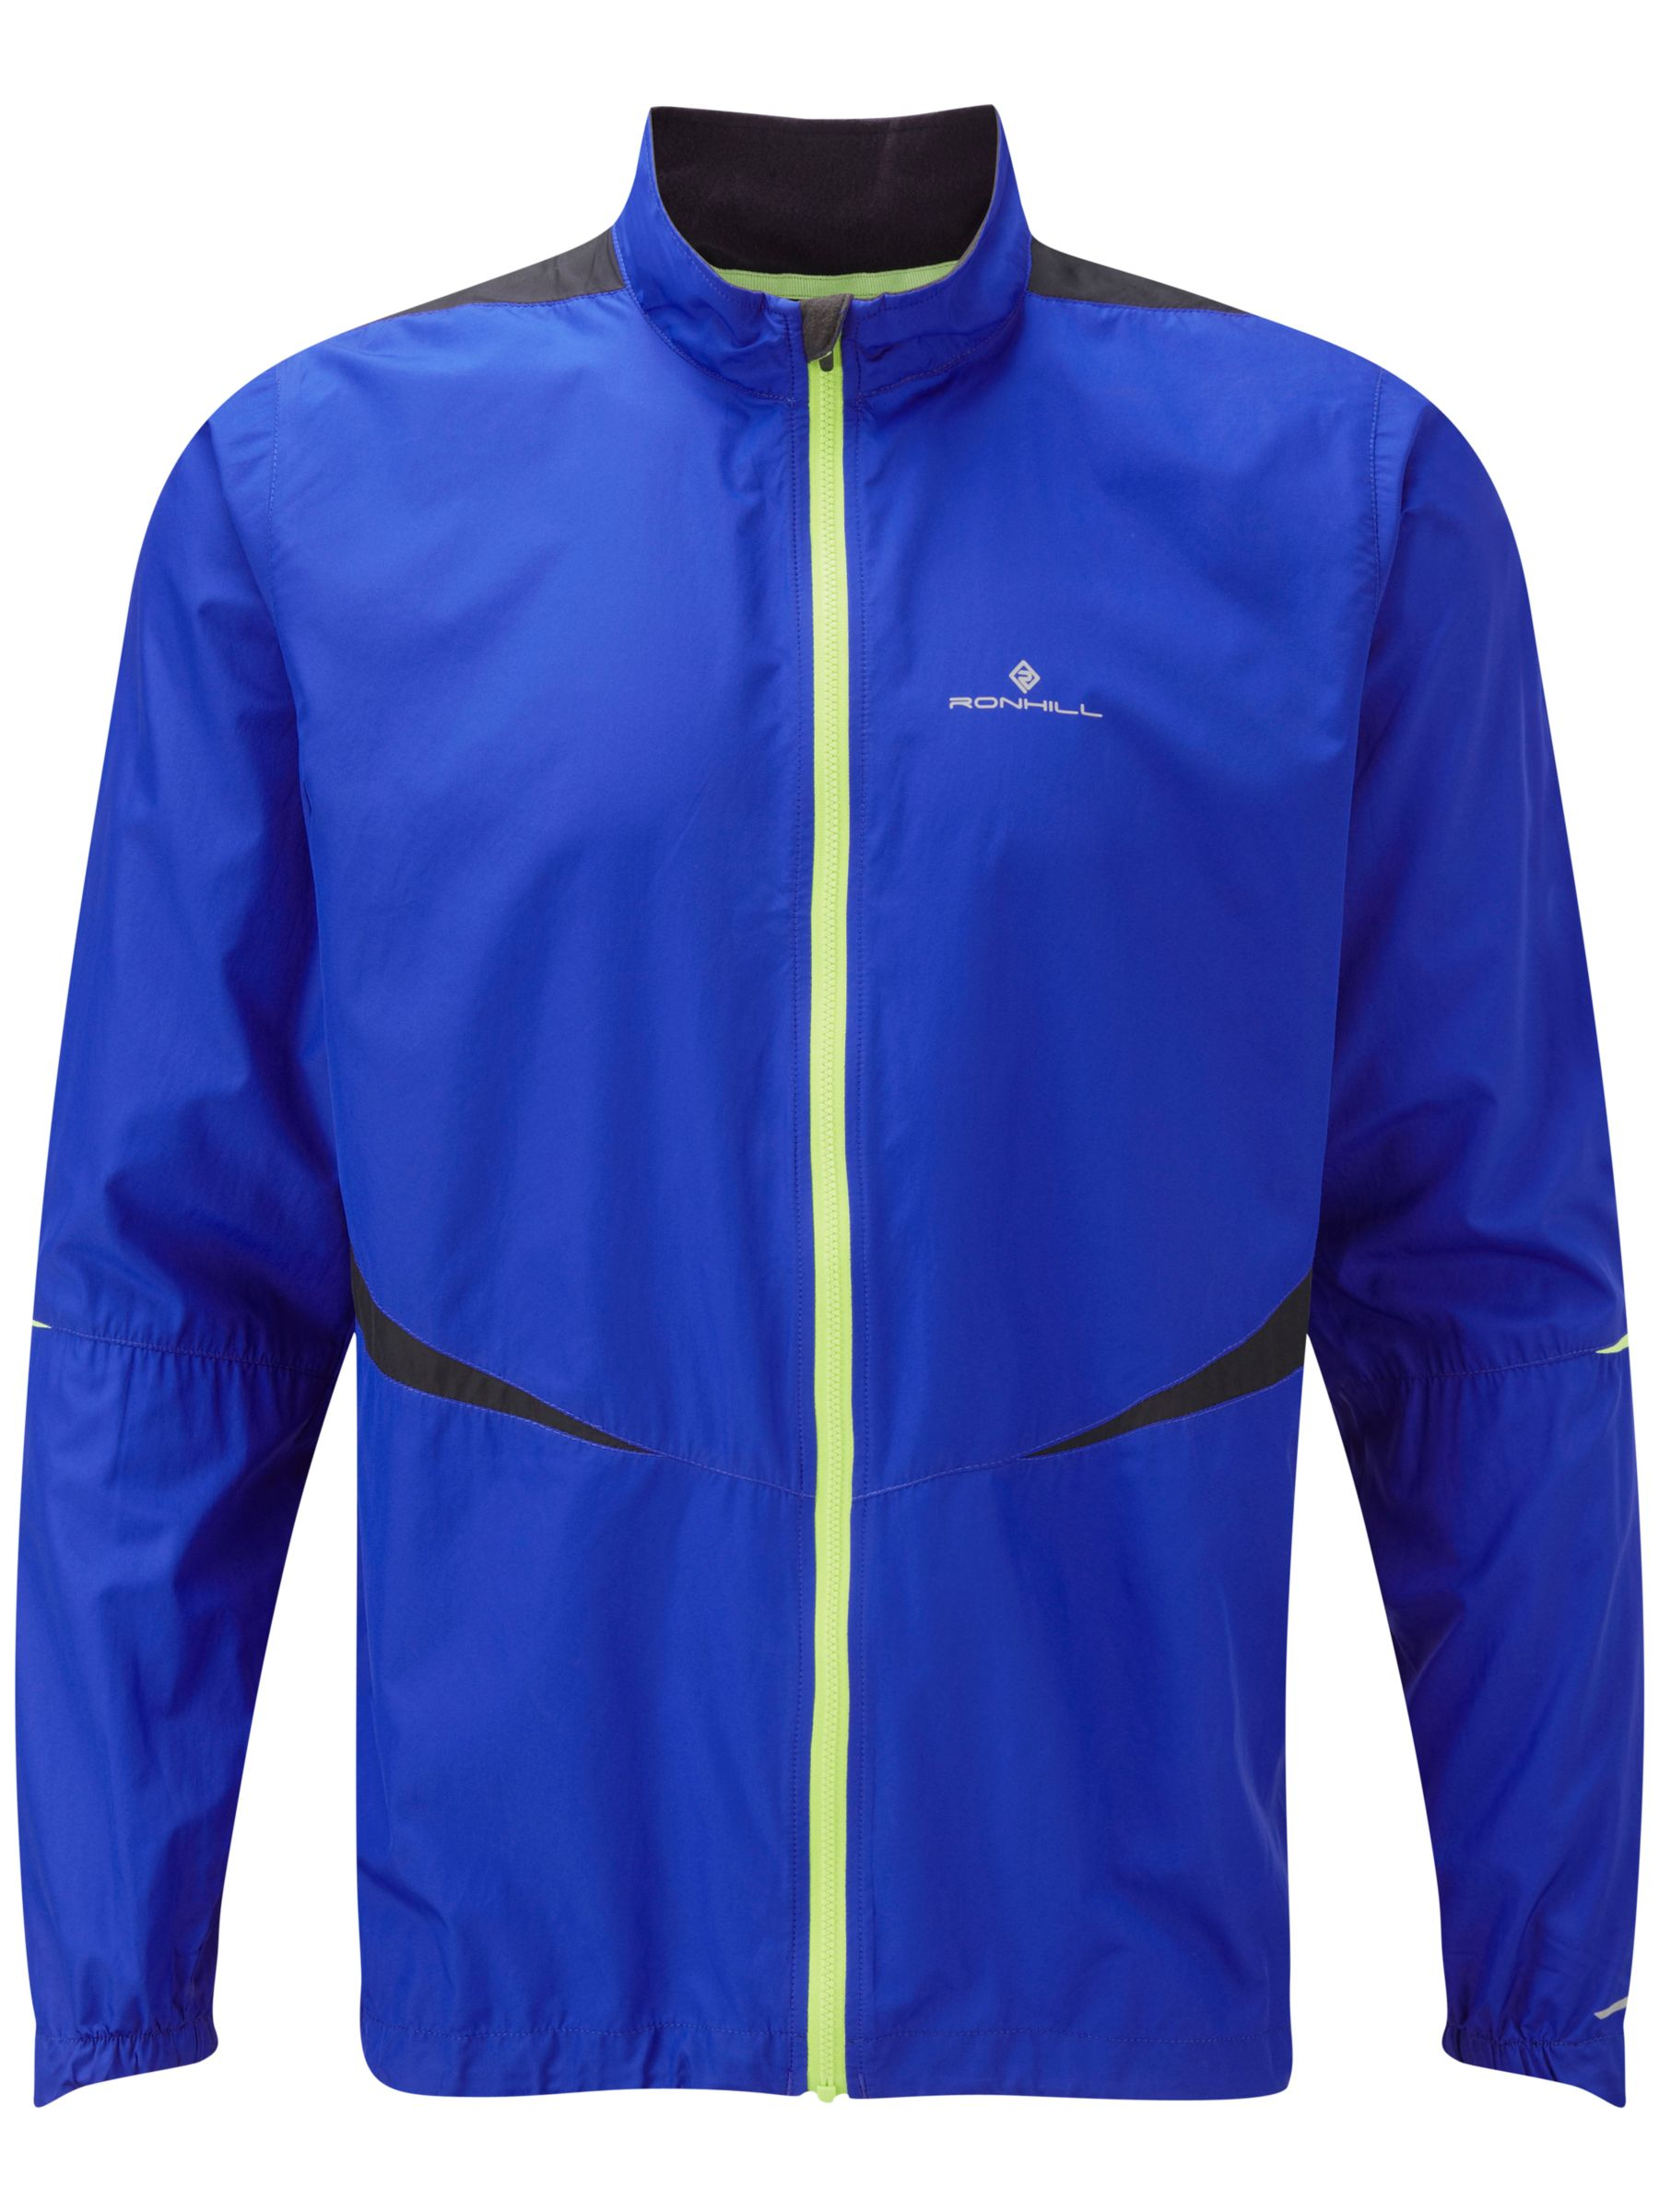 Ronhill Advance Windlite Jacket, Blue/Green